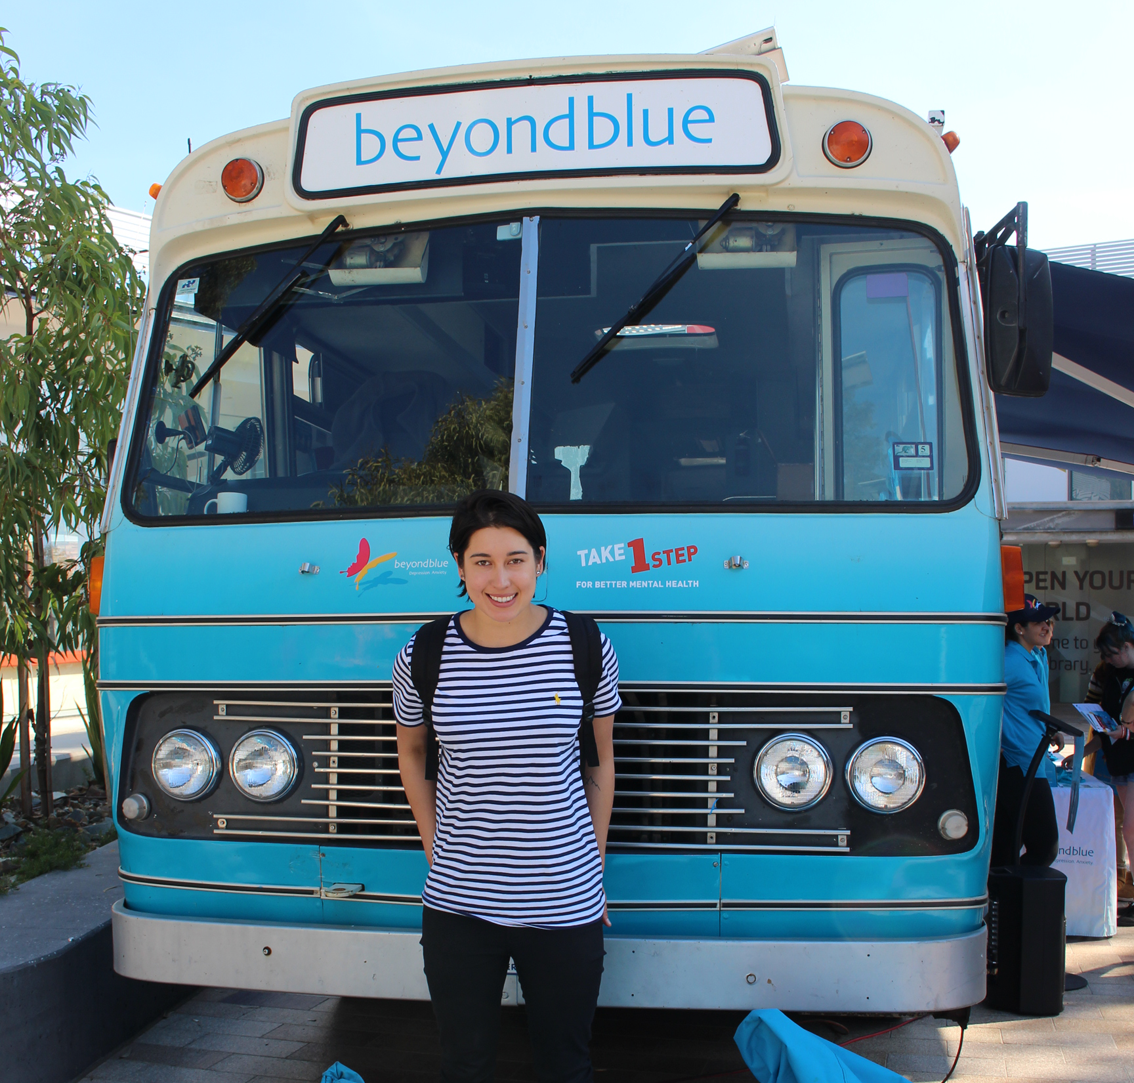 Beyond Blue Ambassador and Winter Olympian Belle Brockhoff dropped by between uni classes.